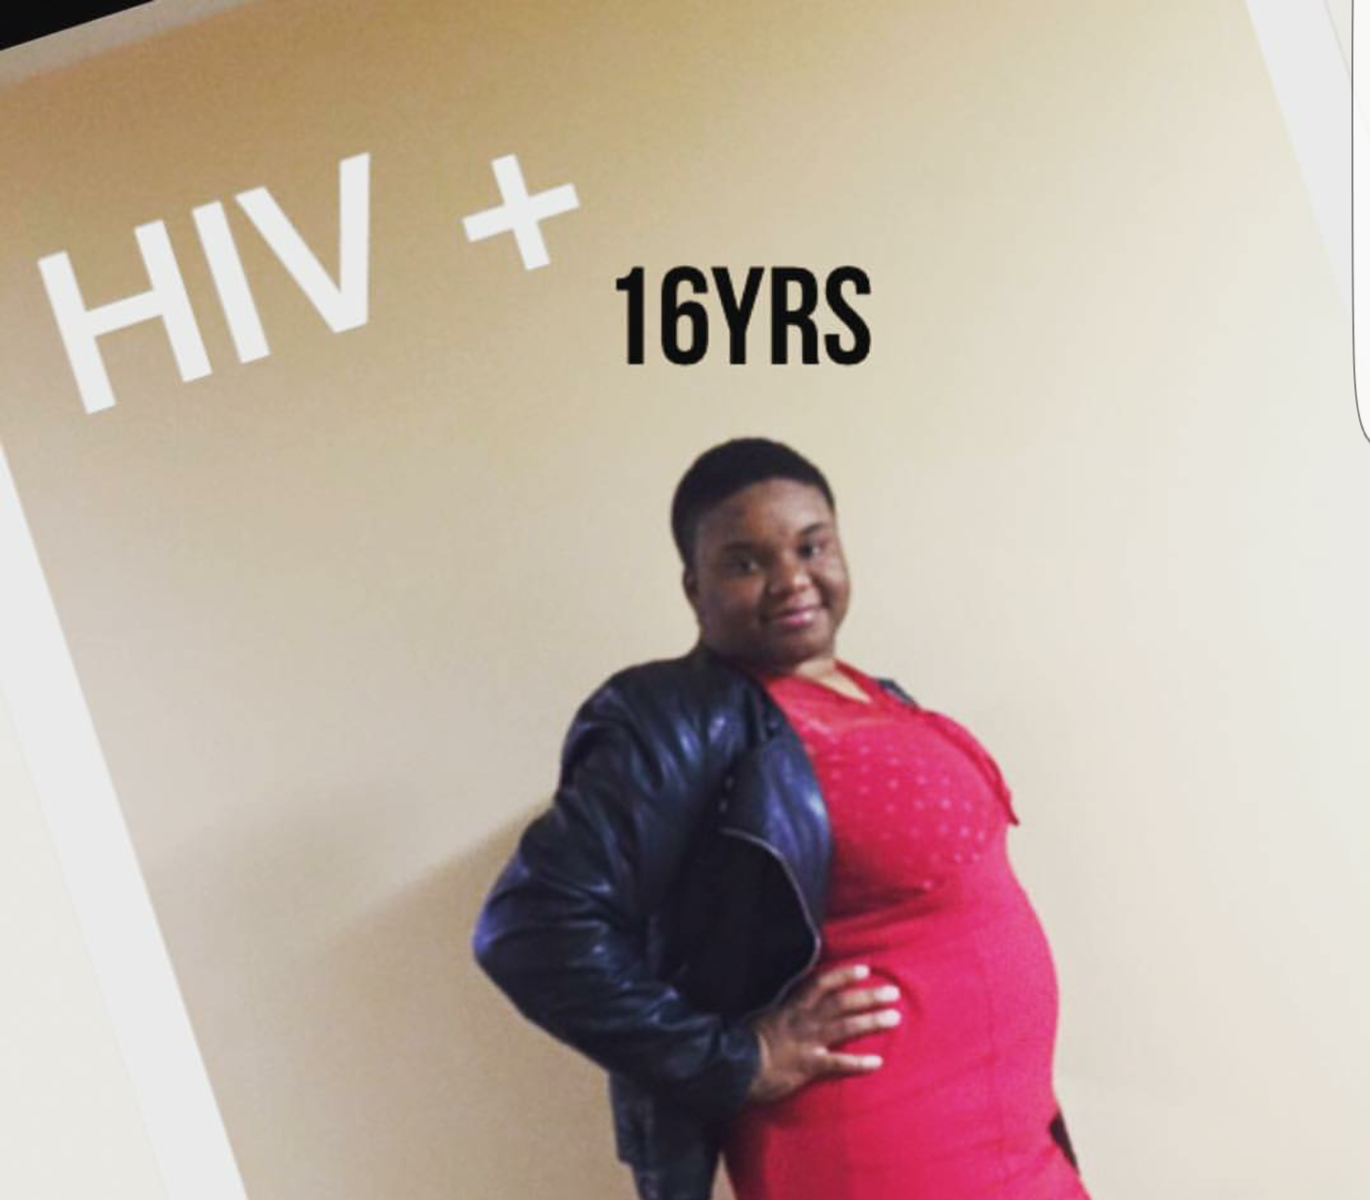 LeSherri is proud of thriving with HIV for 16 years